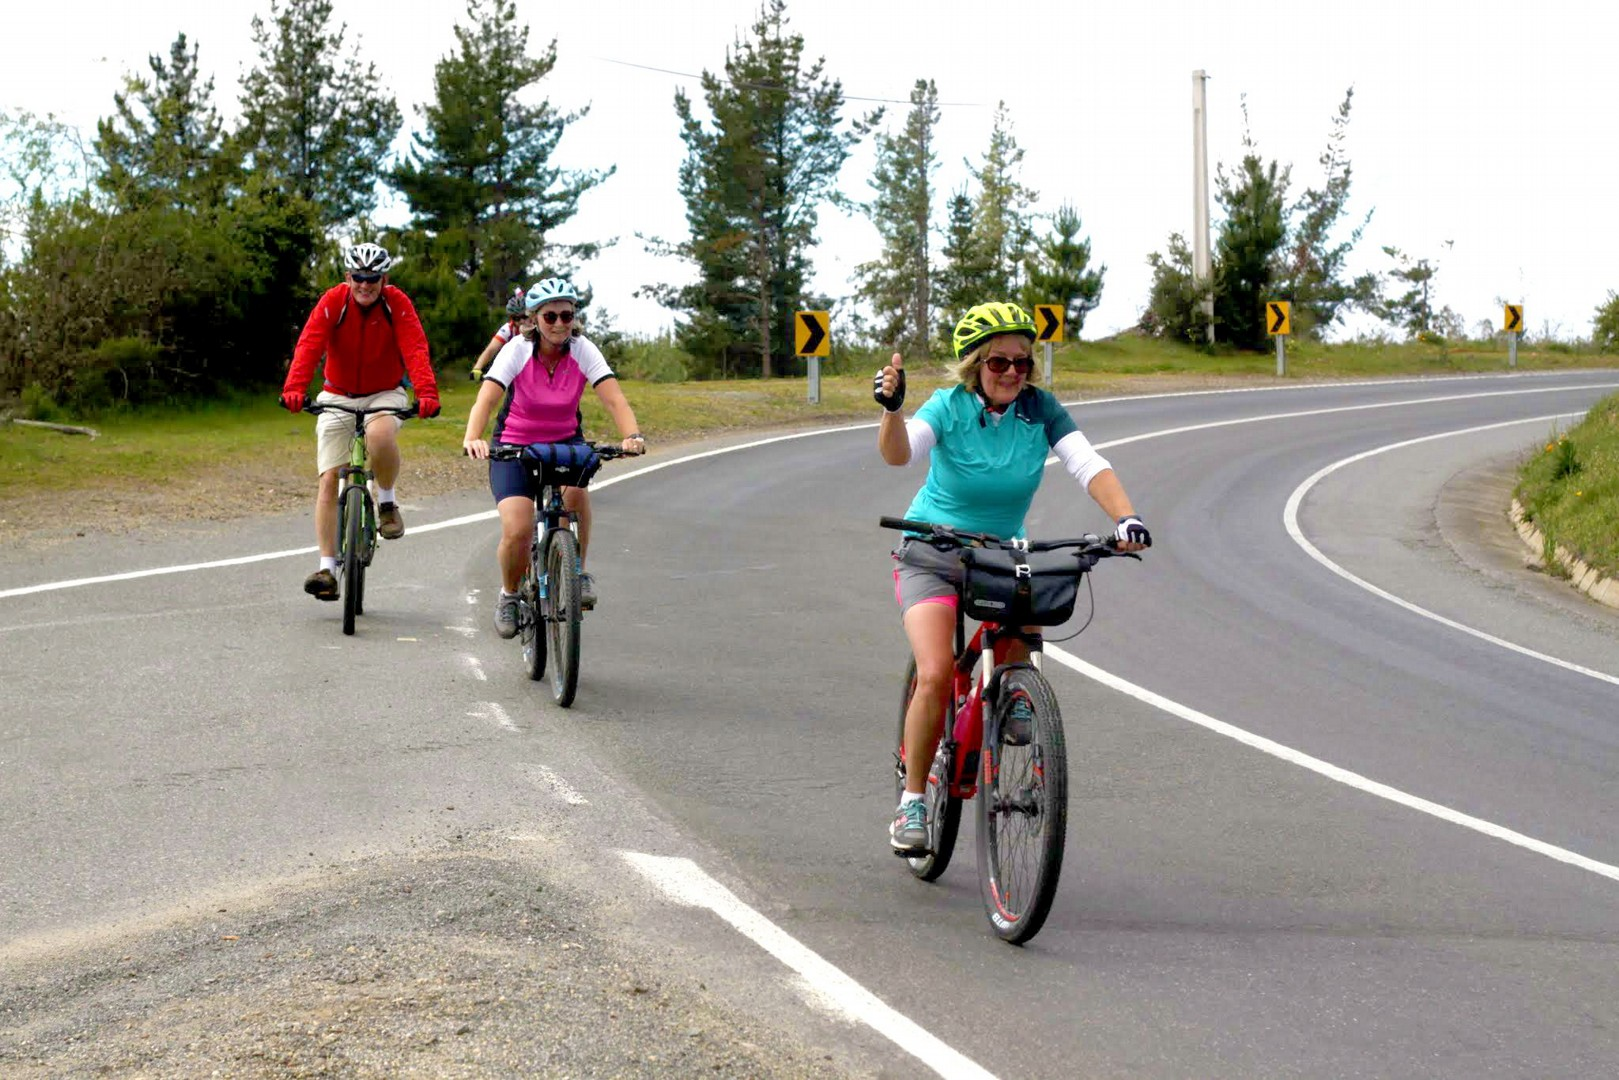 IMG_9536.jpg - Chile - Wine Country - Cycling Adventures